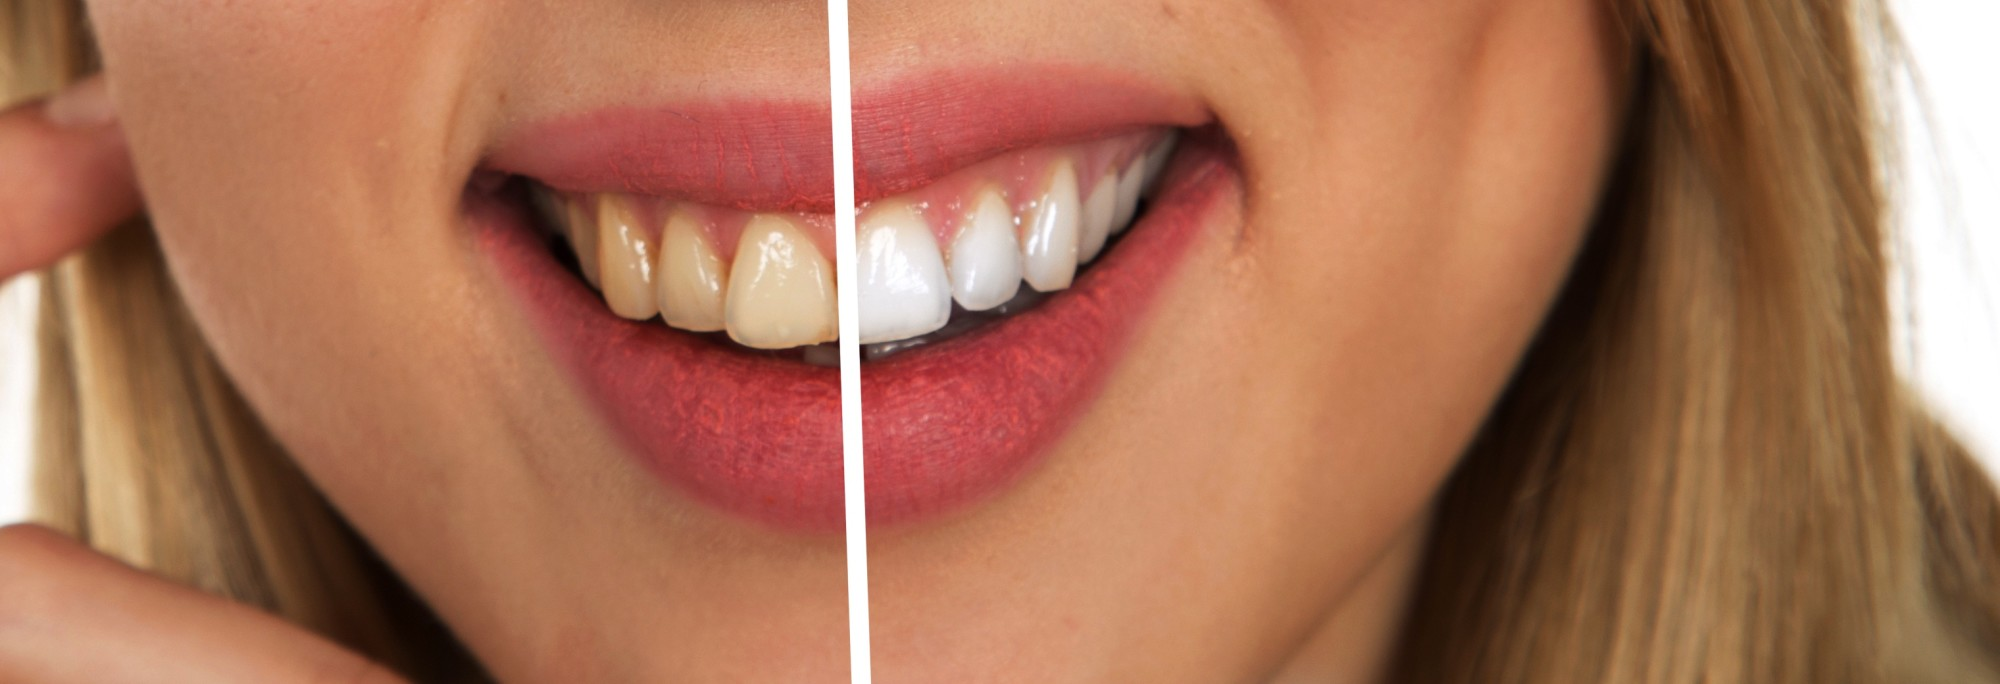 How to Get Super White Teeth: 4 Amazing Secrets